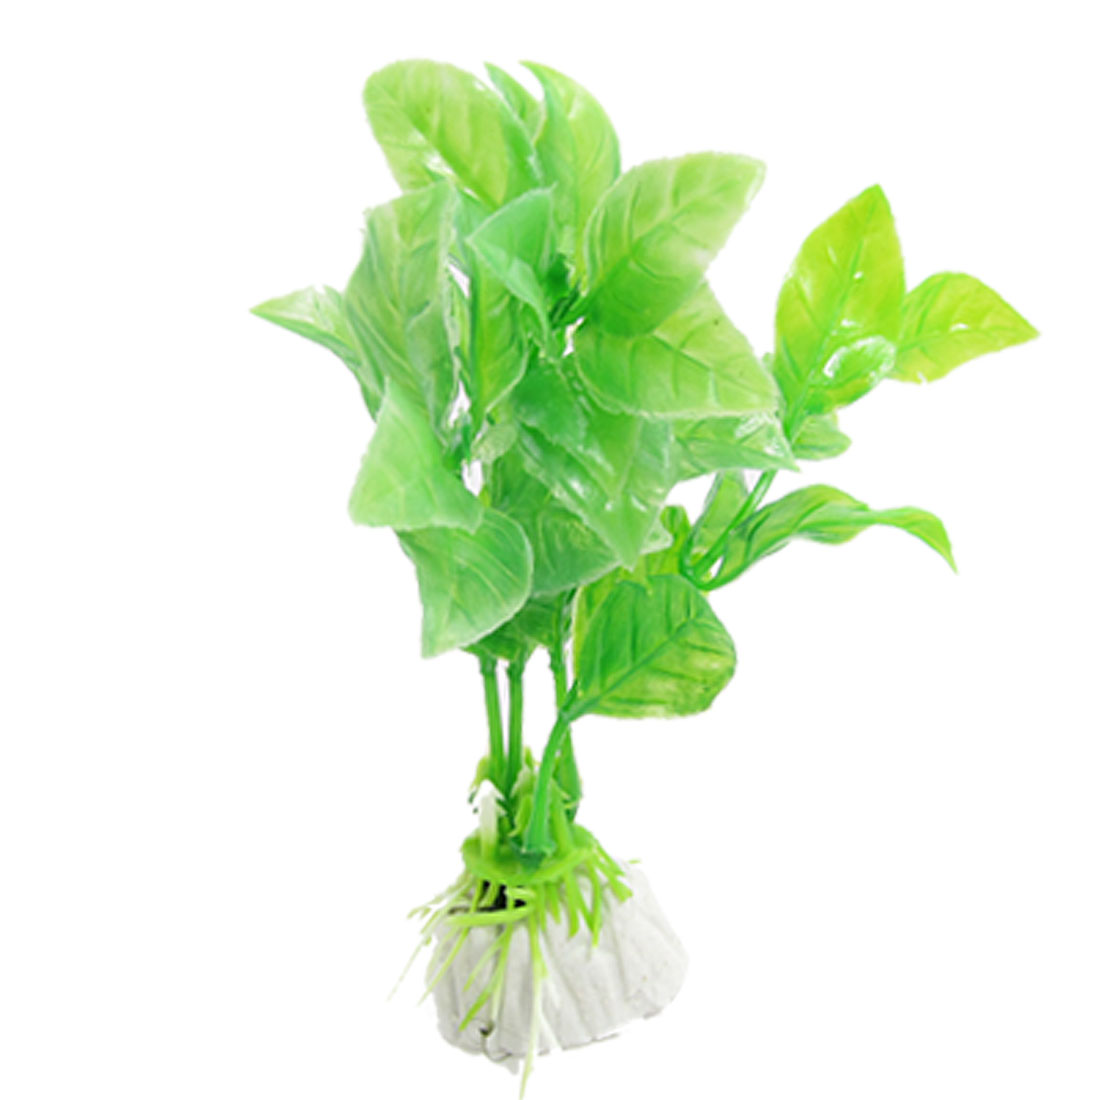 5 Pcs Green Plastic Plant Decor for Fish Tank Aquarium